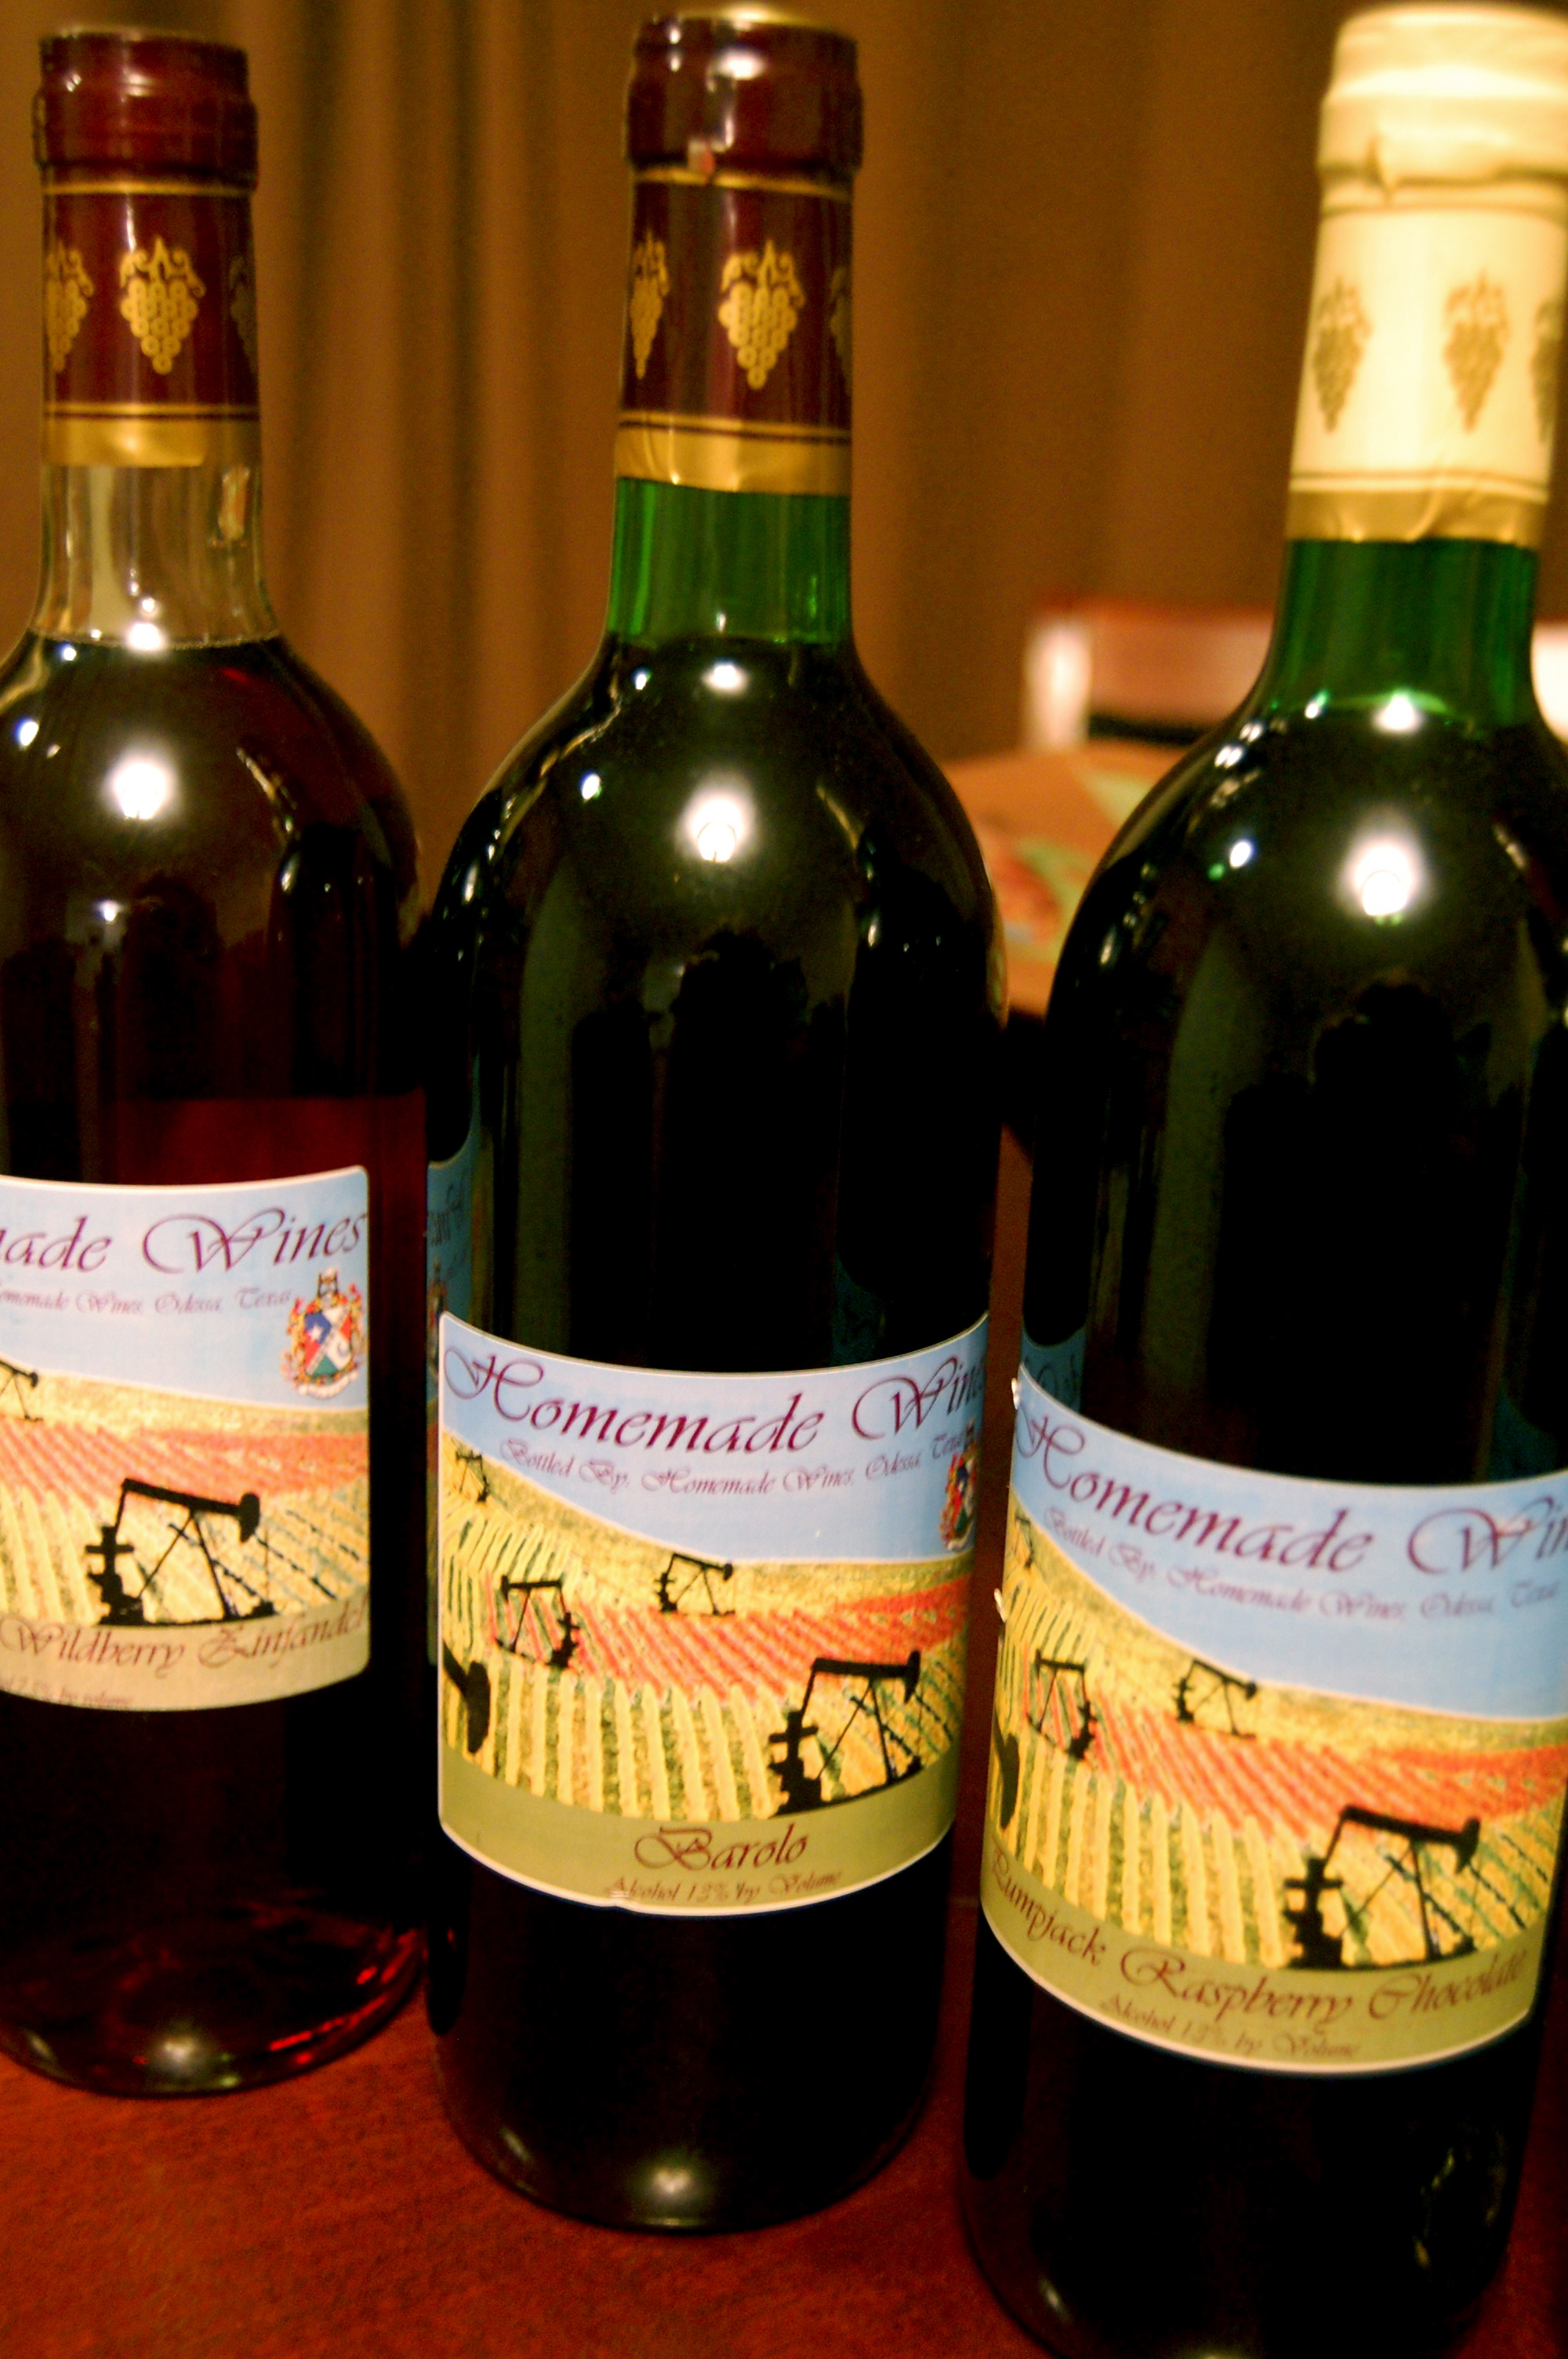 A few of the wines from Homemade Wines of Odessa.